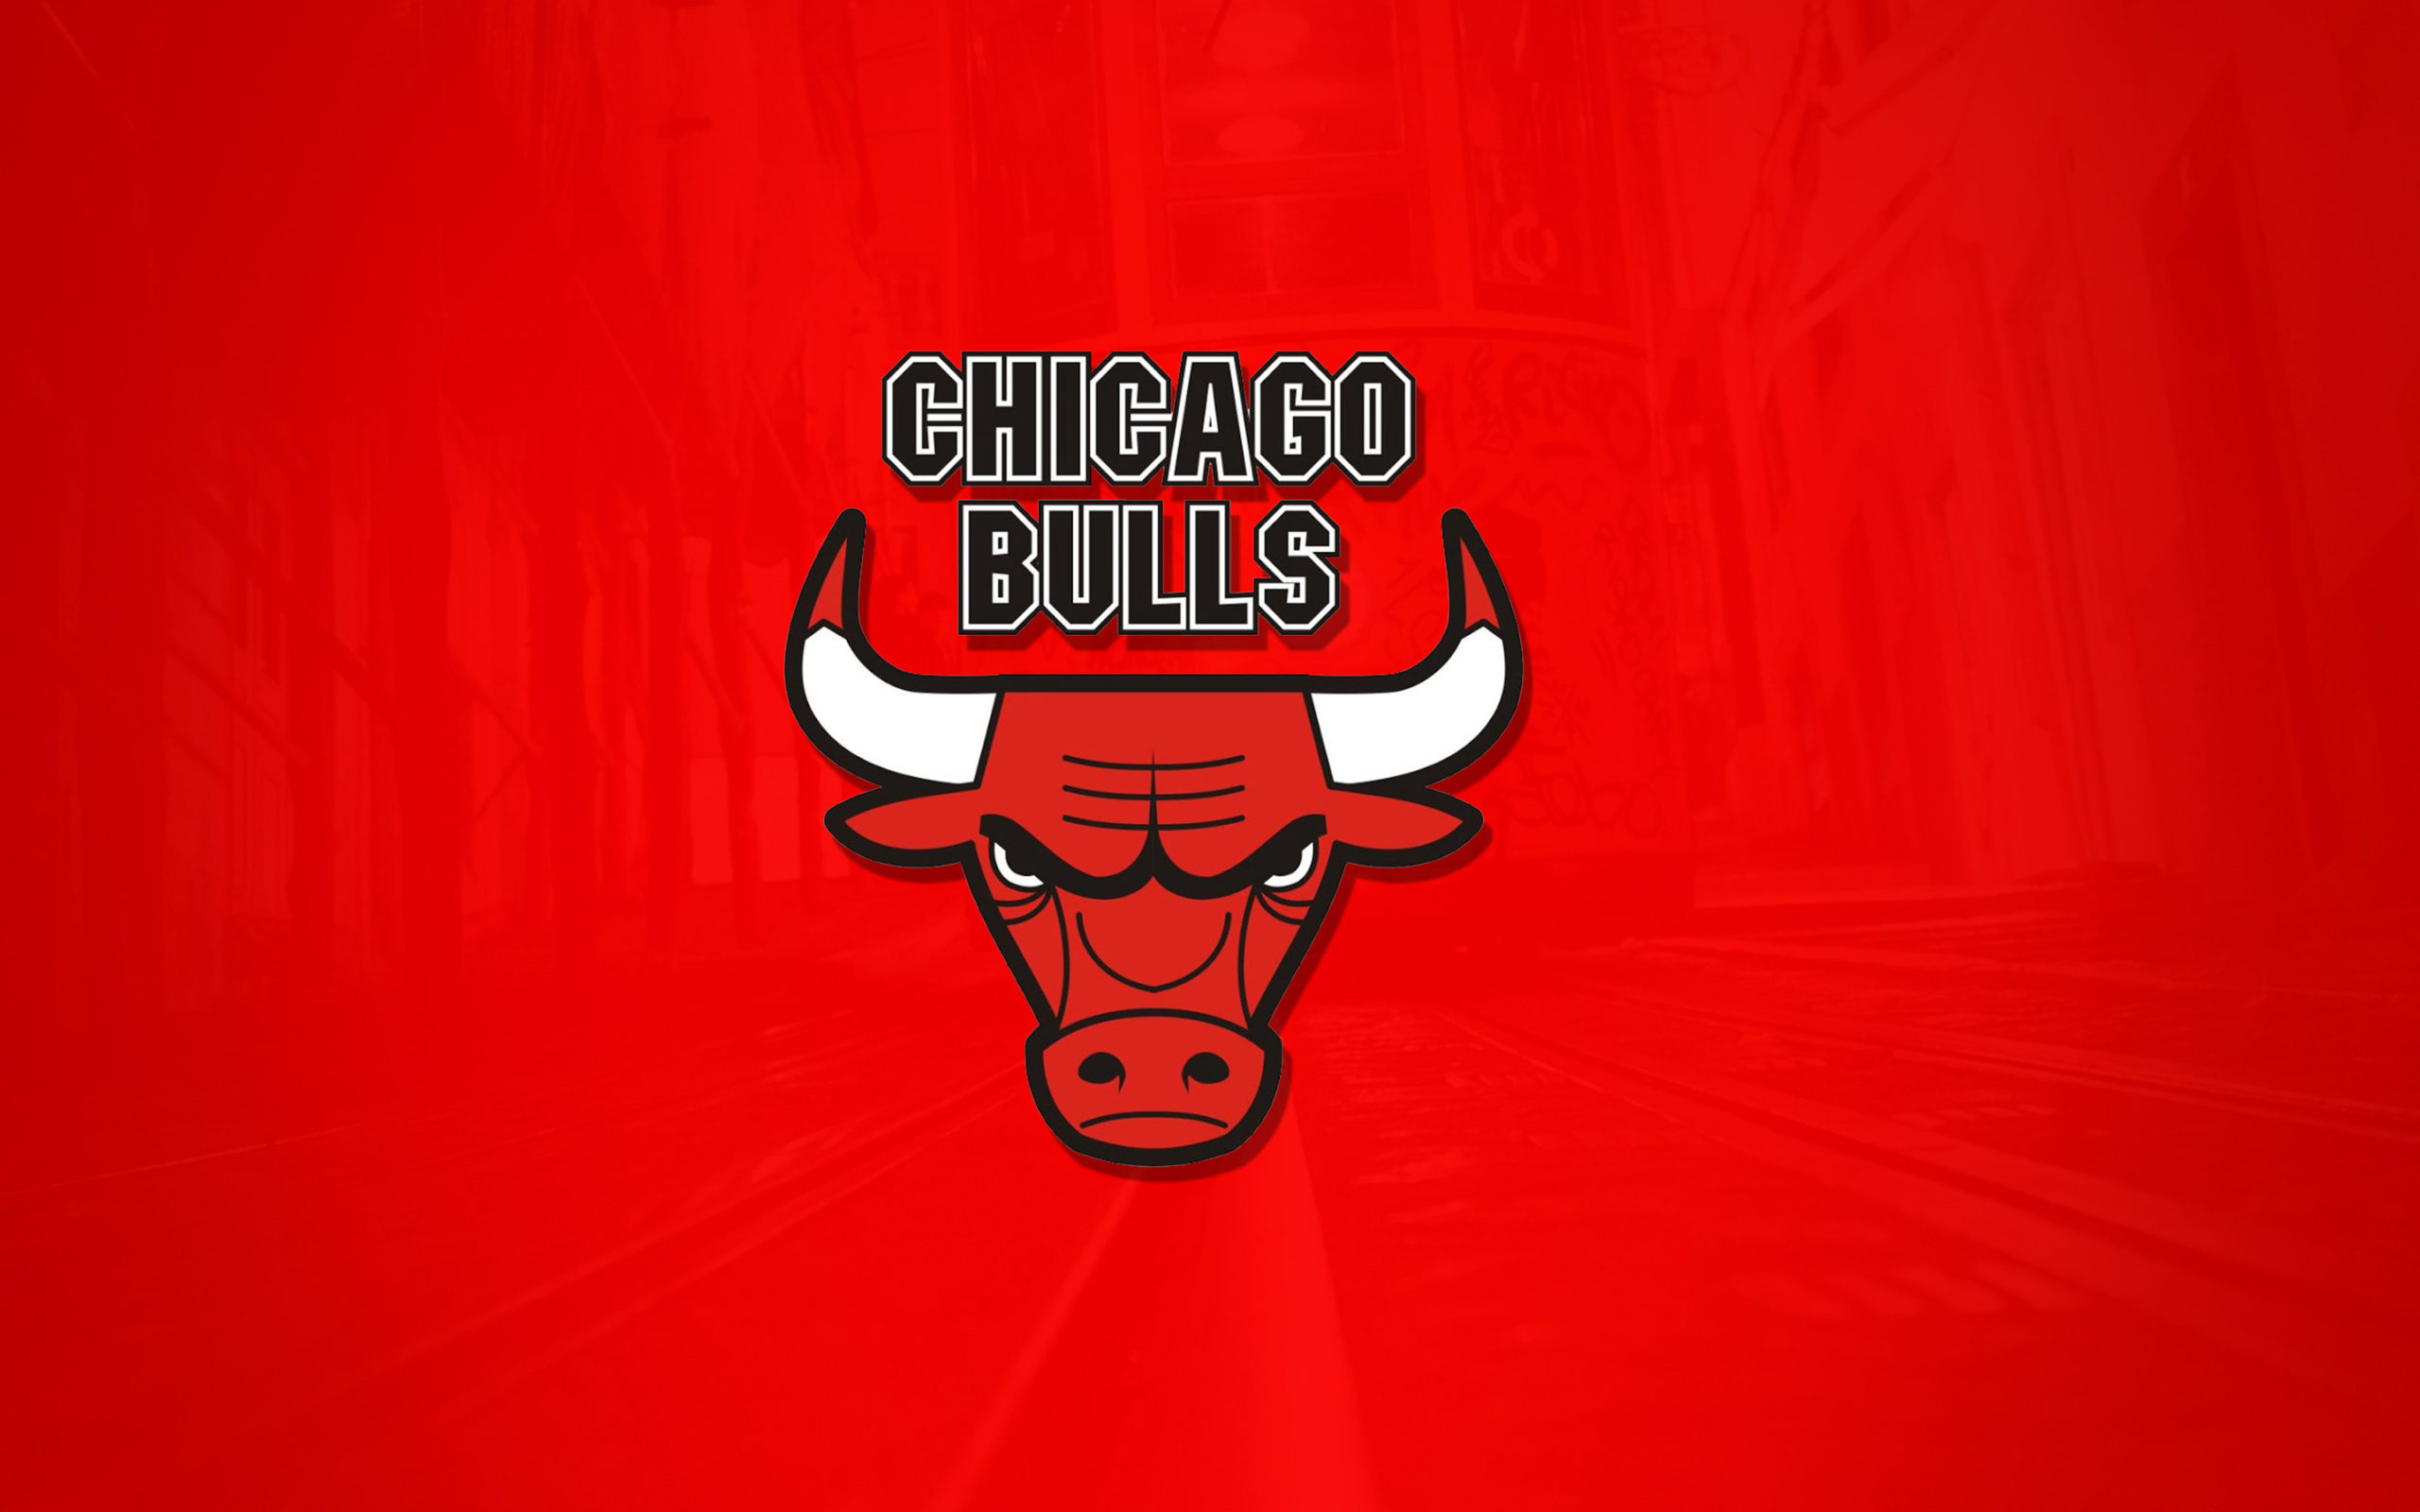 Download The Chicago Bulls